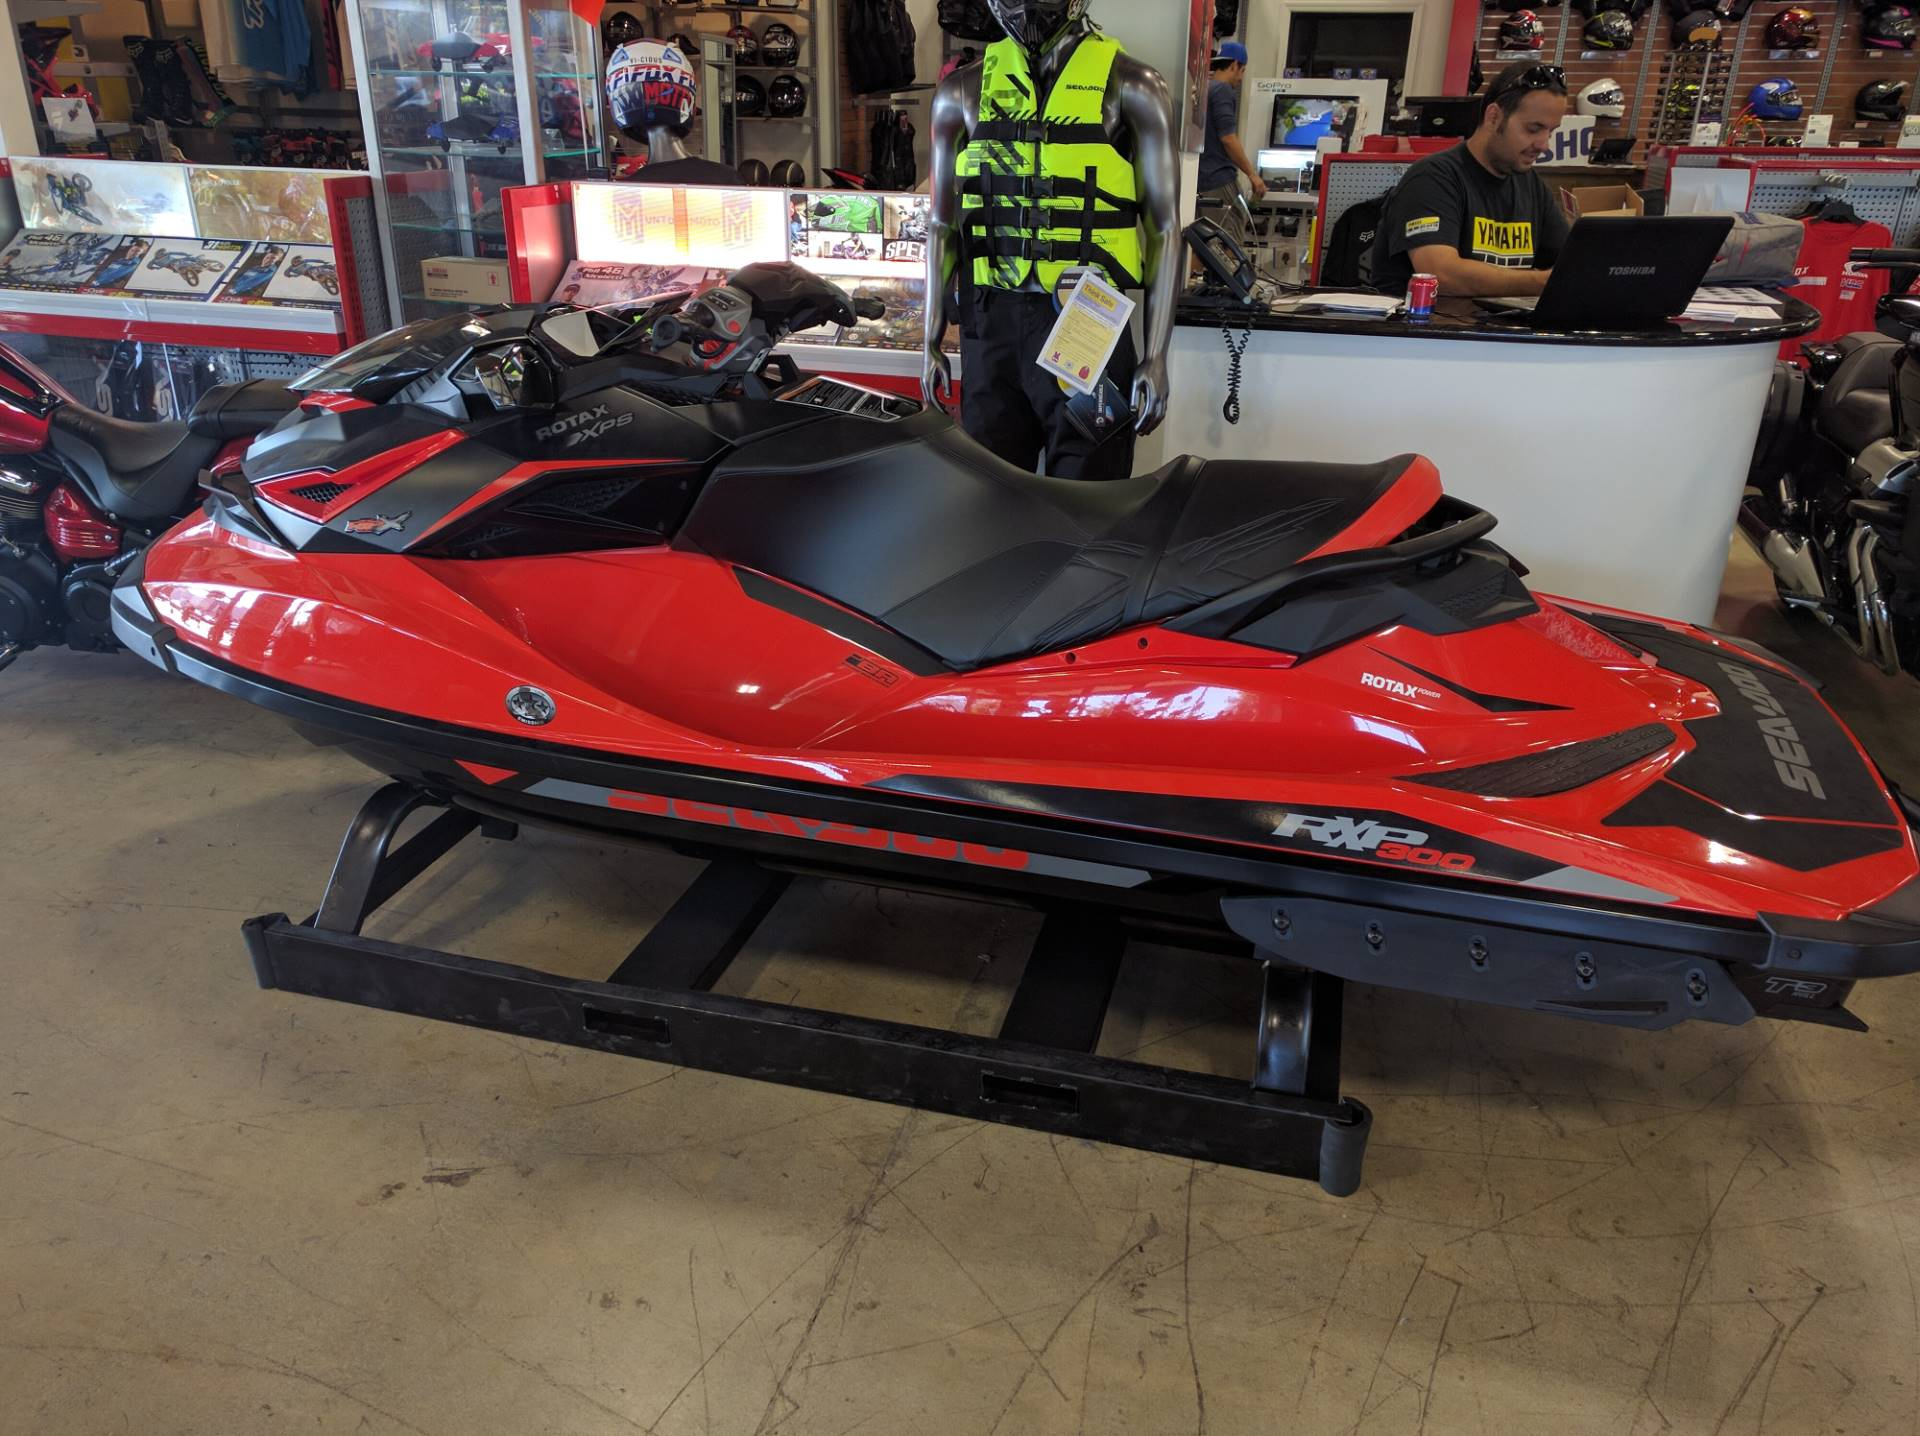 2016 Sea-Doo RXP-X 300 in La Habra, California